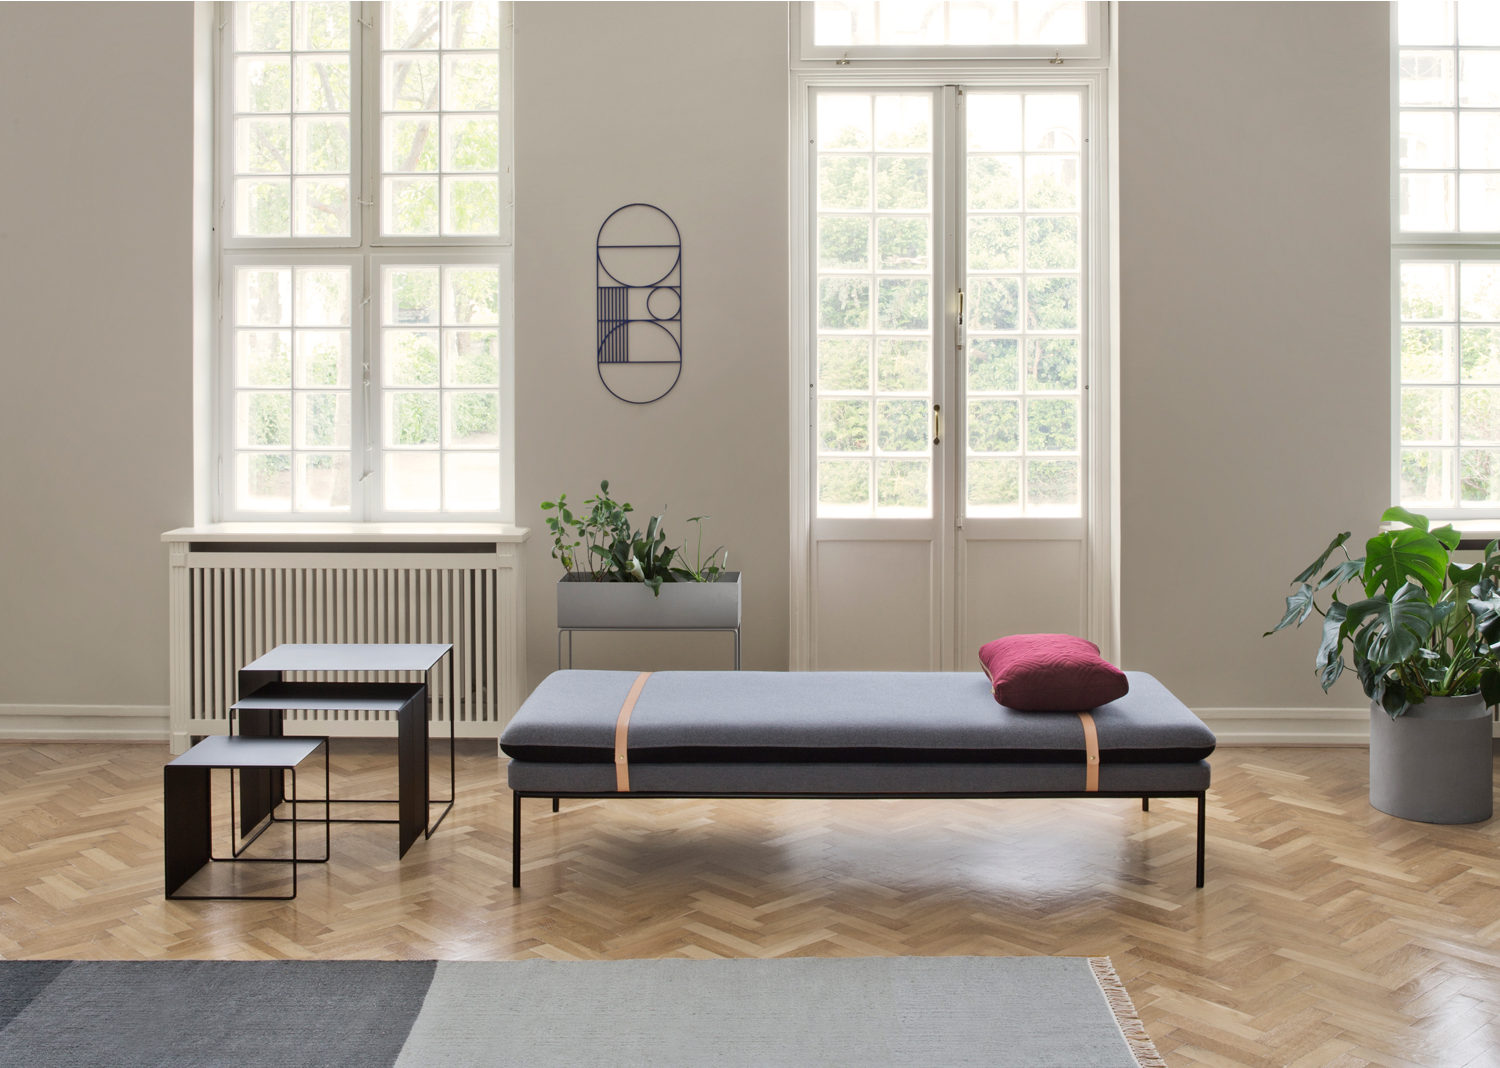 Daybed banquette Ferm Living